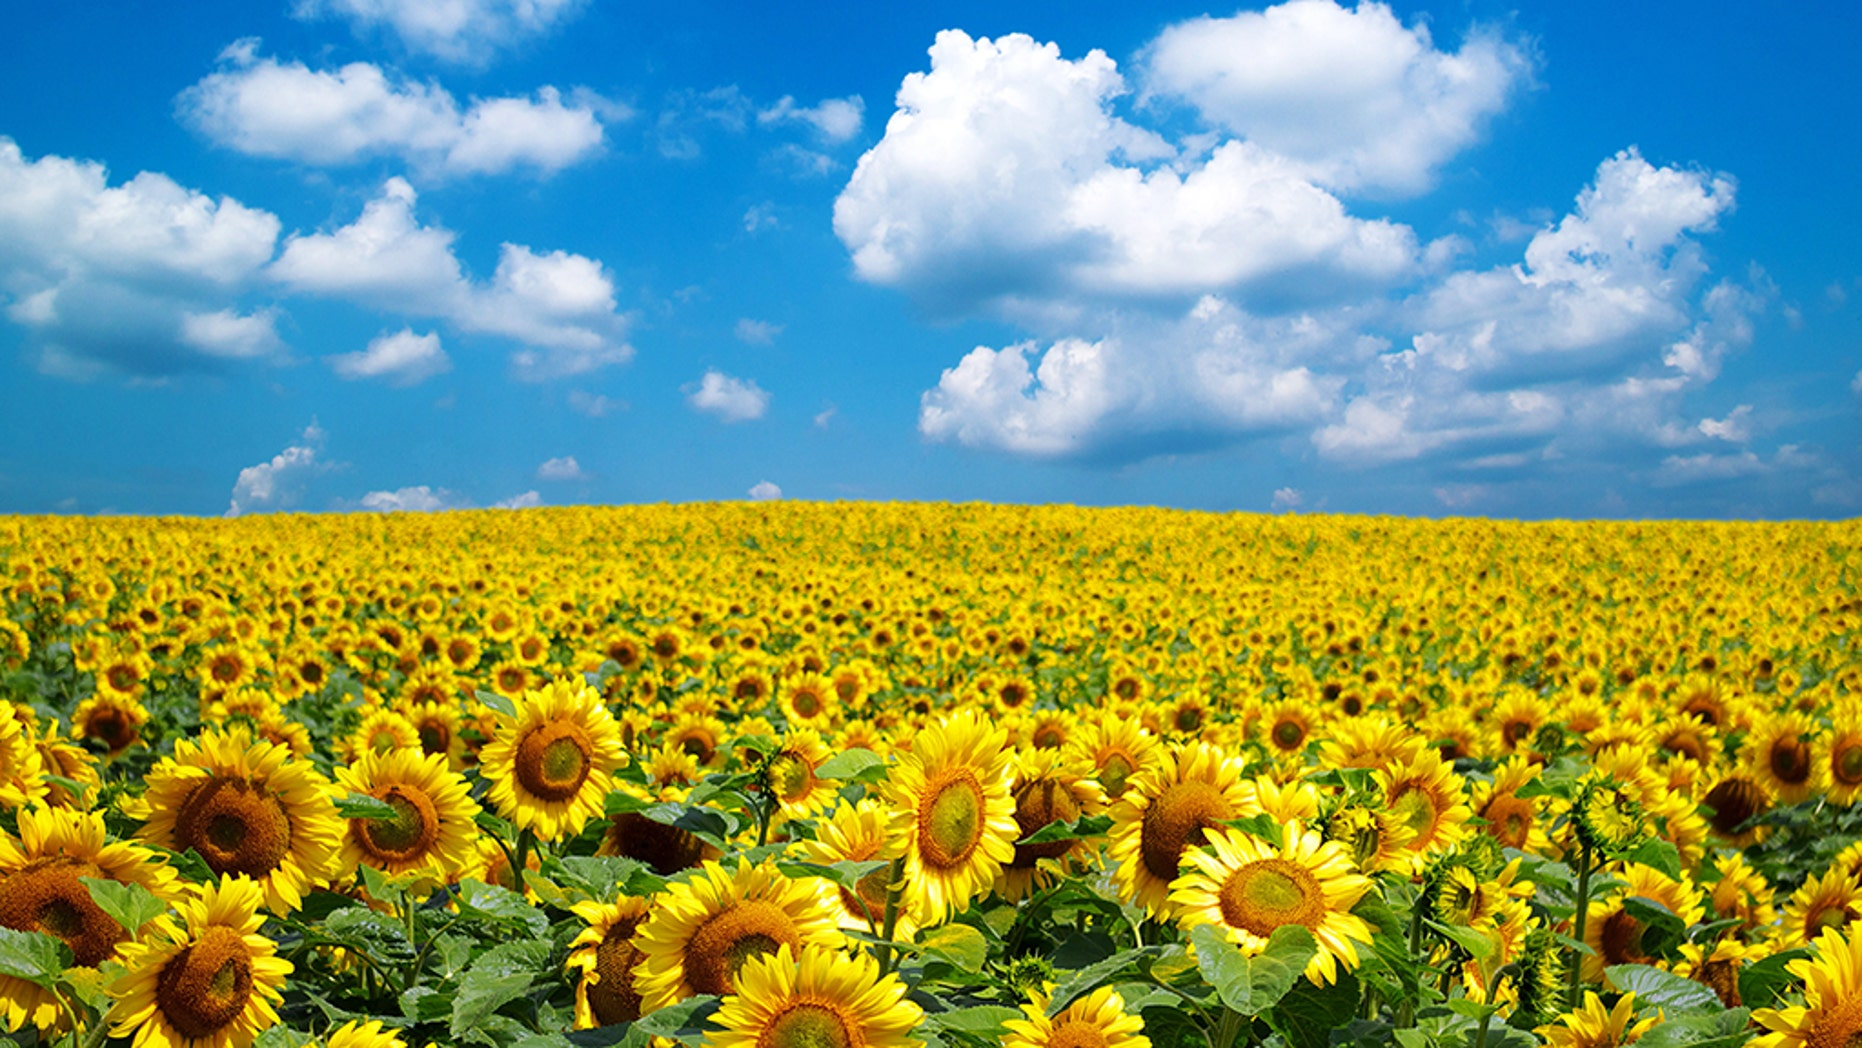 A Canadian farm boasting beautiful sunflowers has put an end to photo-seeking visitors for the remainder of the season due to a massive crowd over the weekend.